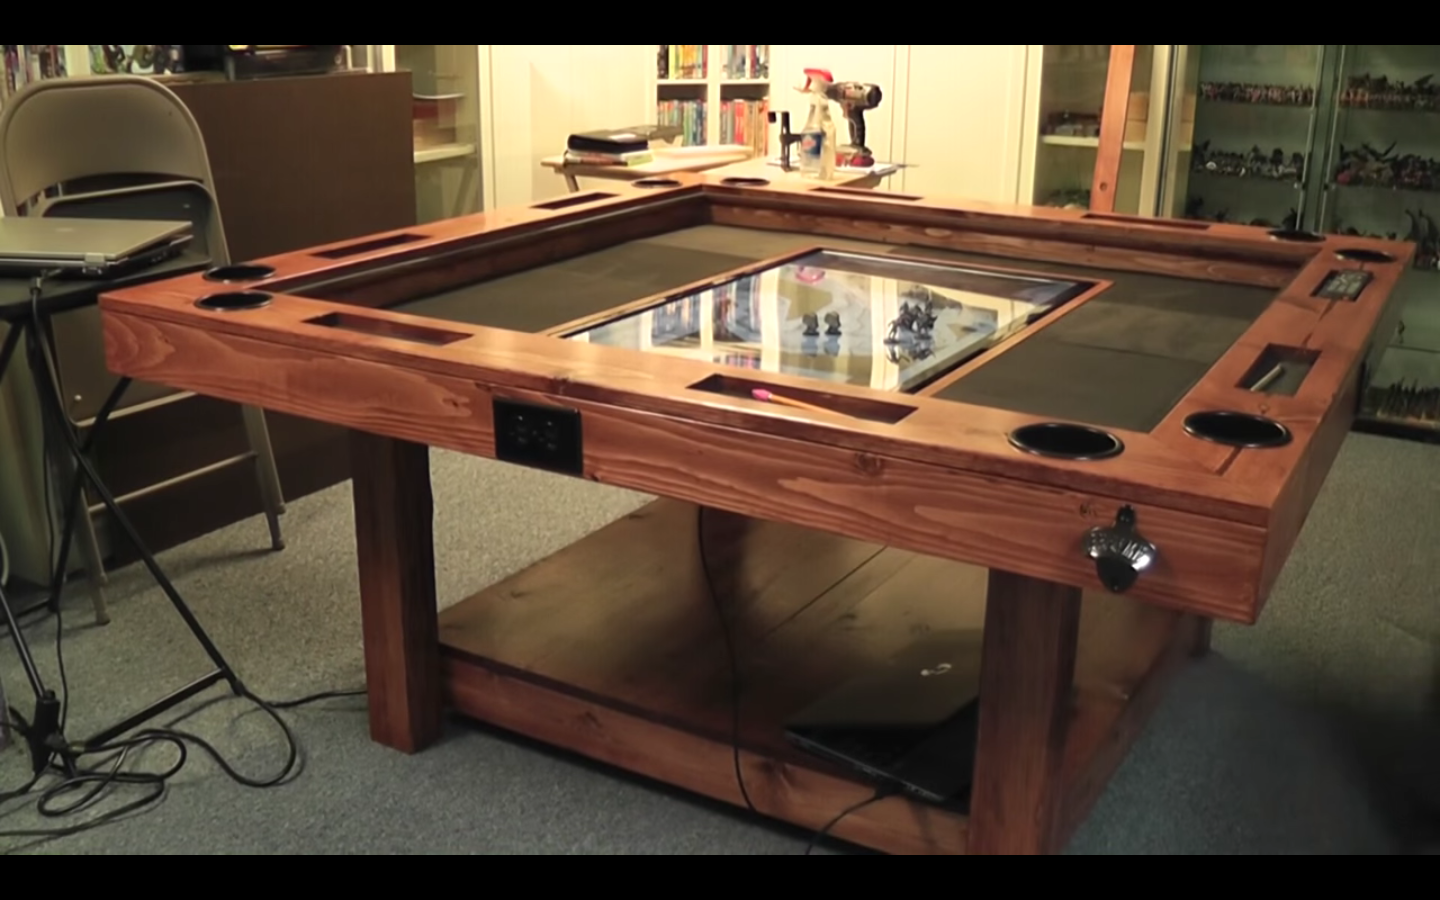 Building the Ultimate Gaming Table